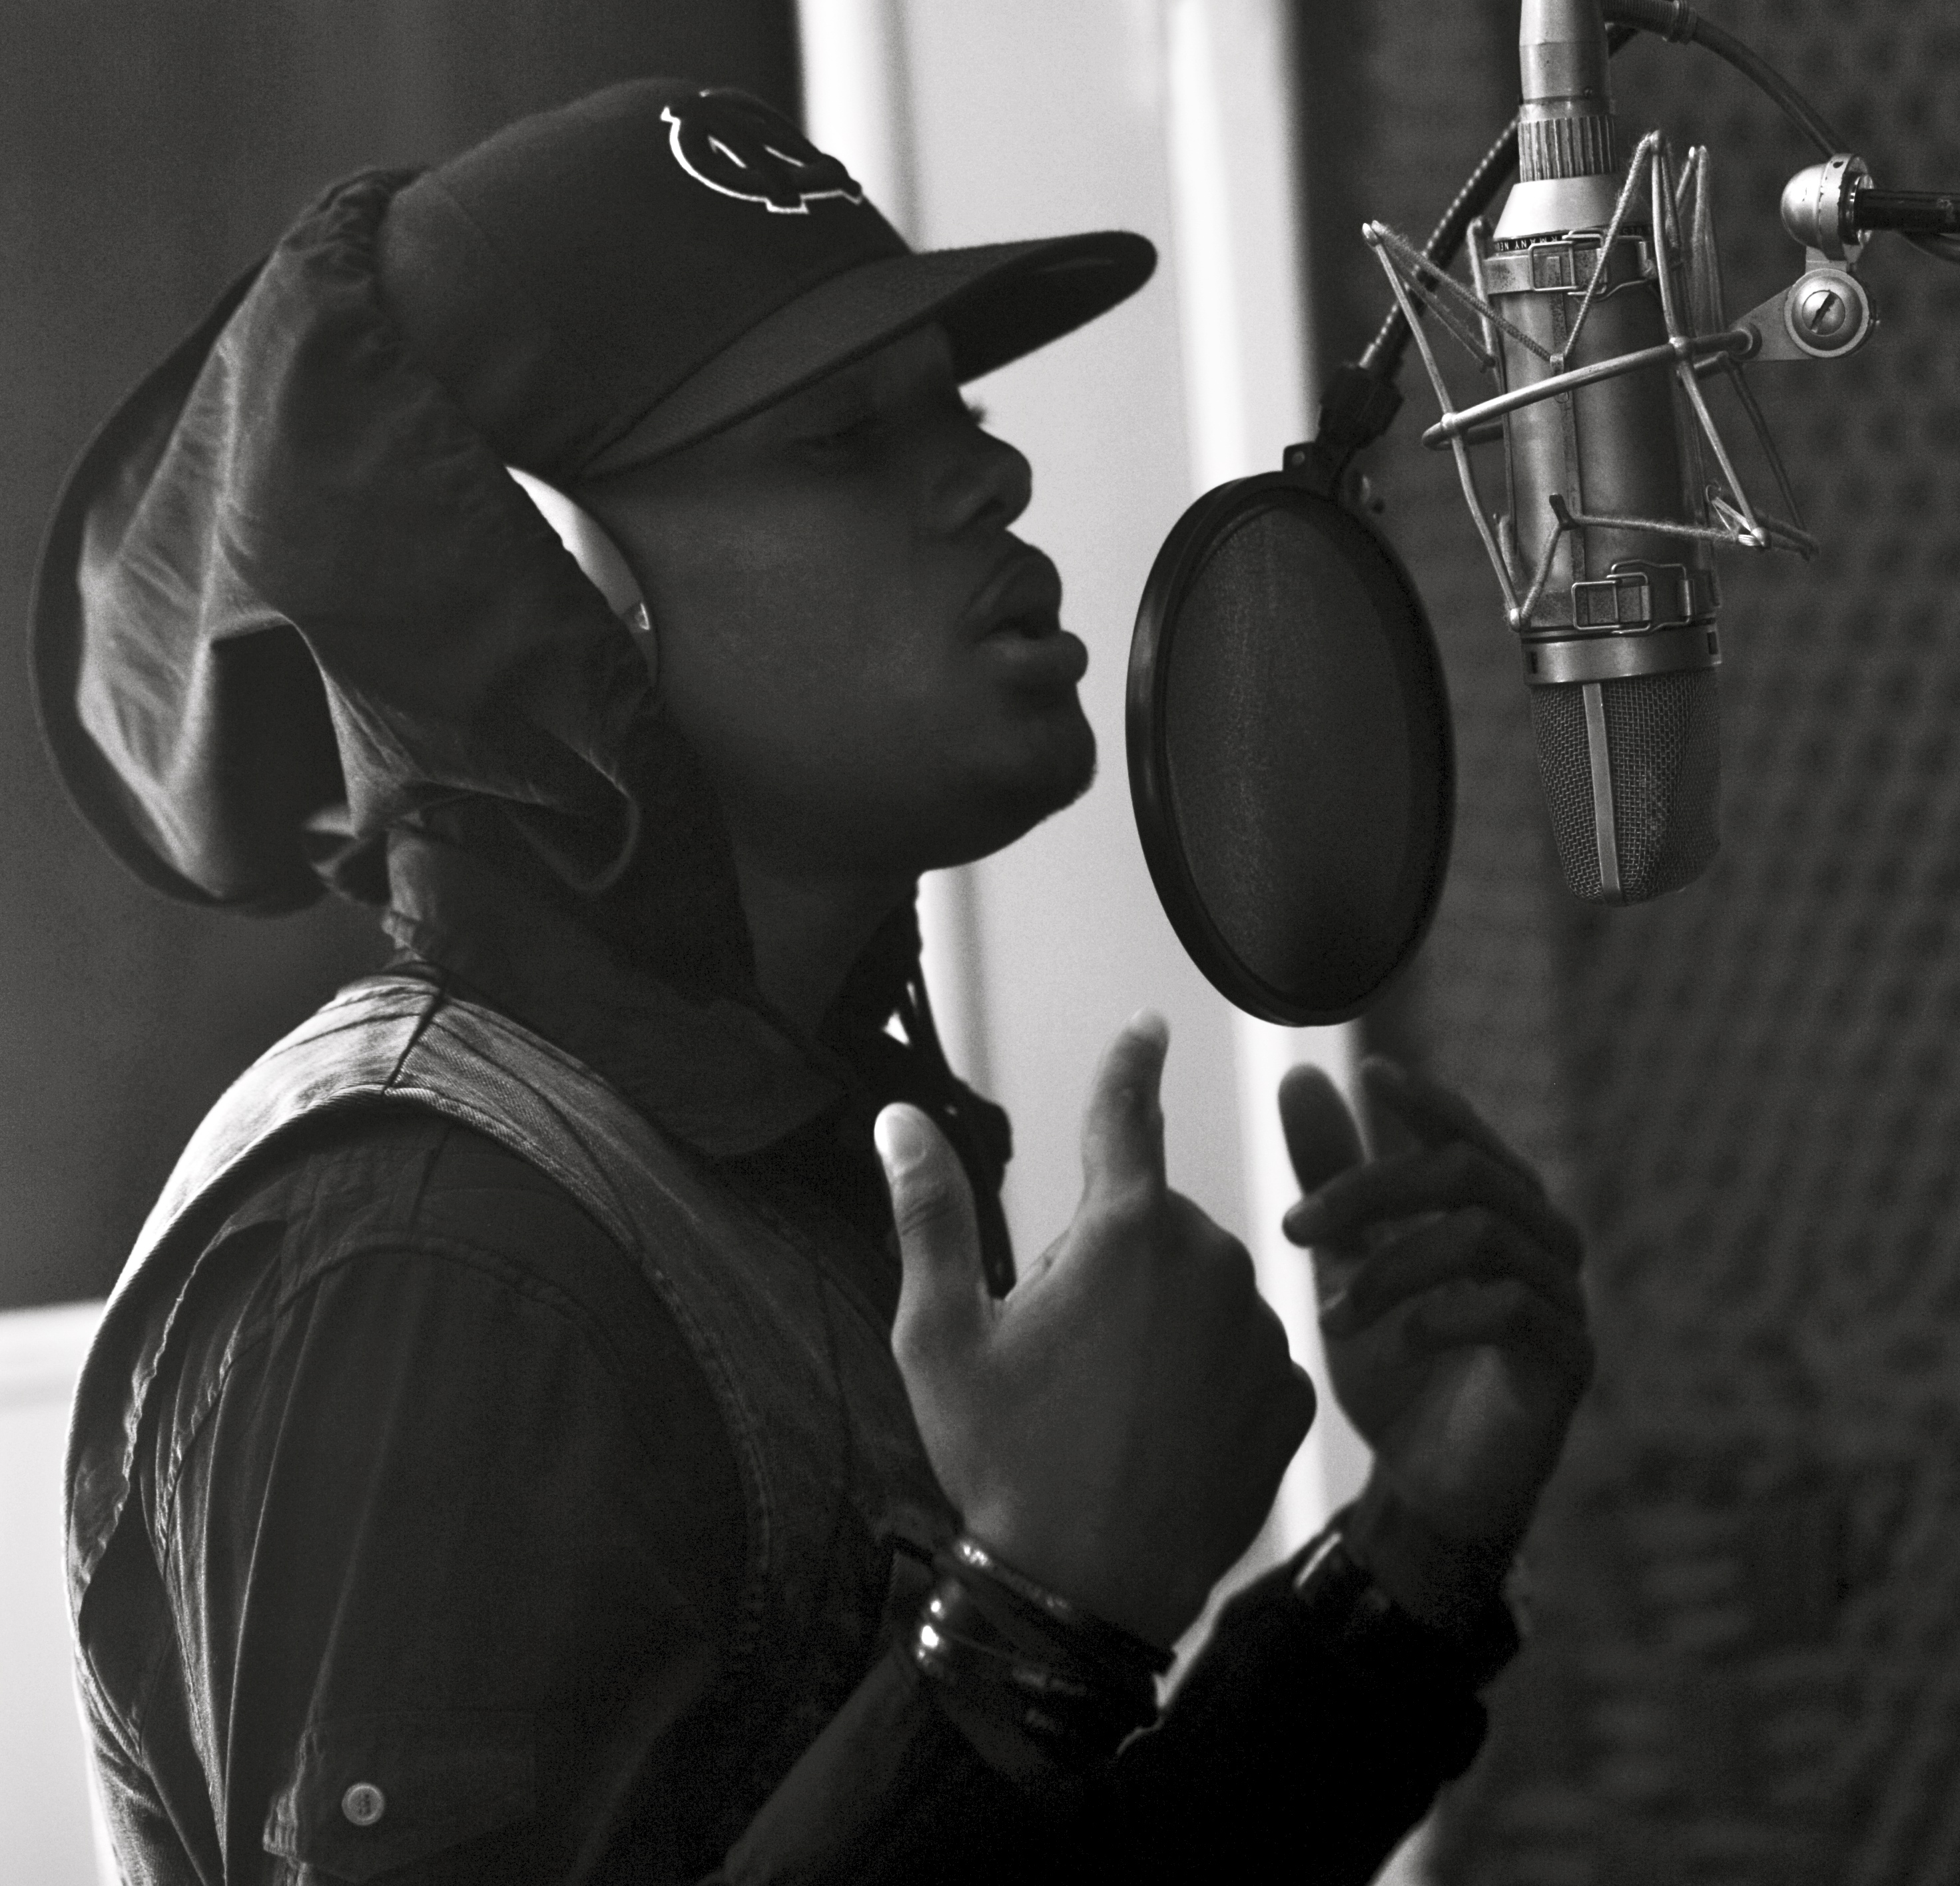 Mixing Rap Vocals To Cut Through The Mix - The Recording